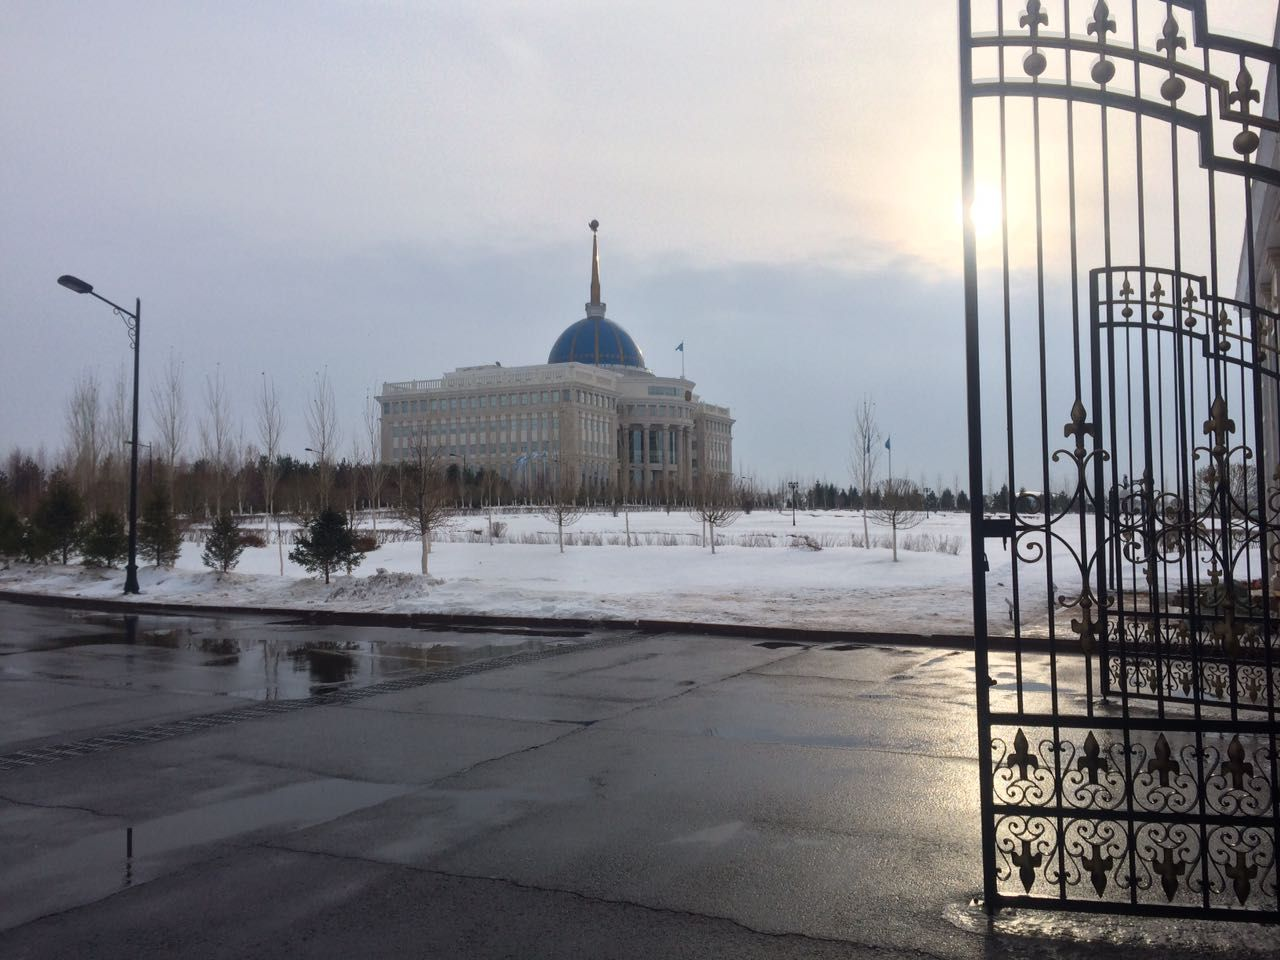 The Presidential Palace in Astana, the capital of Kazakhstan, on December 14, 2016